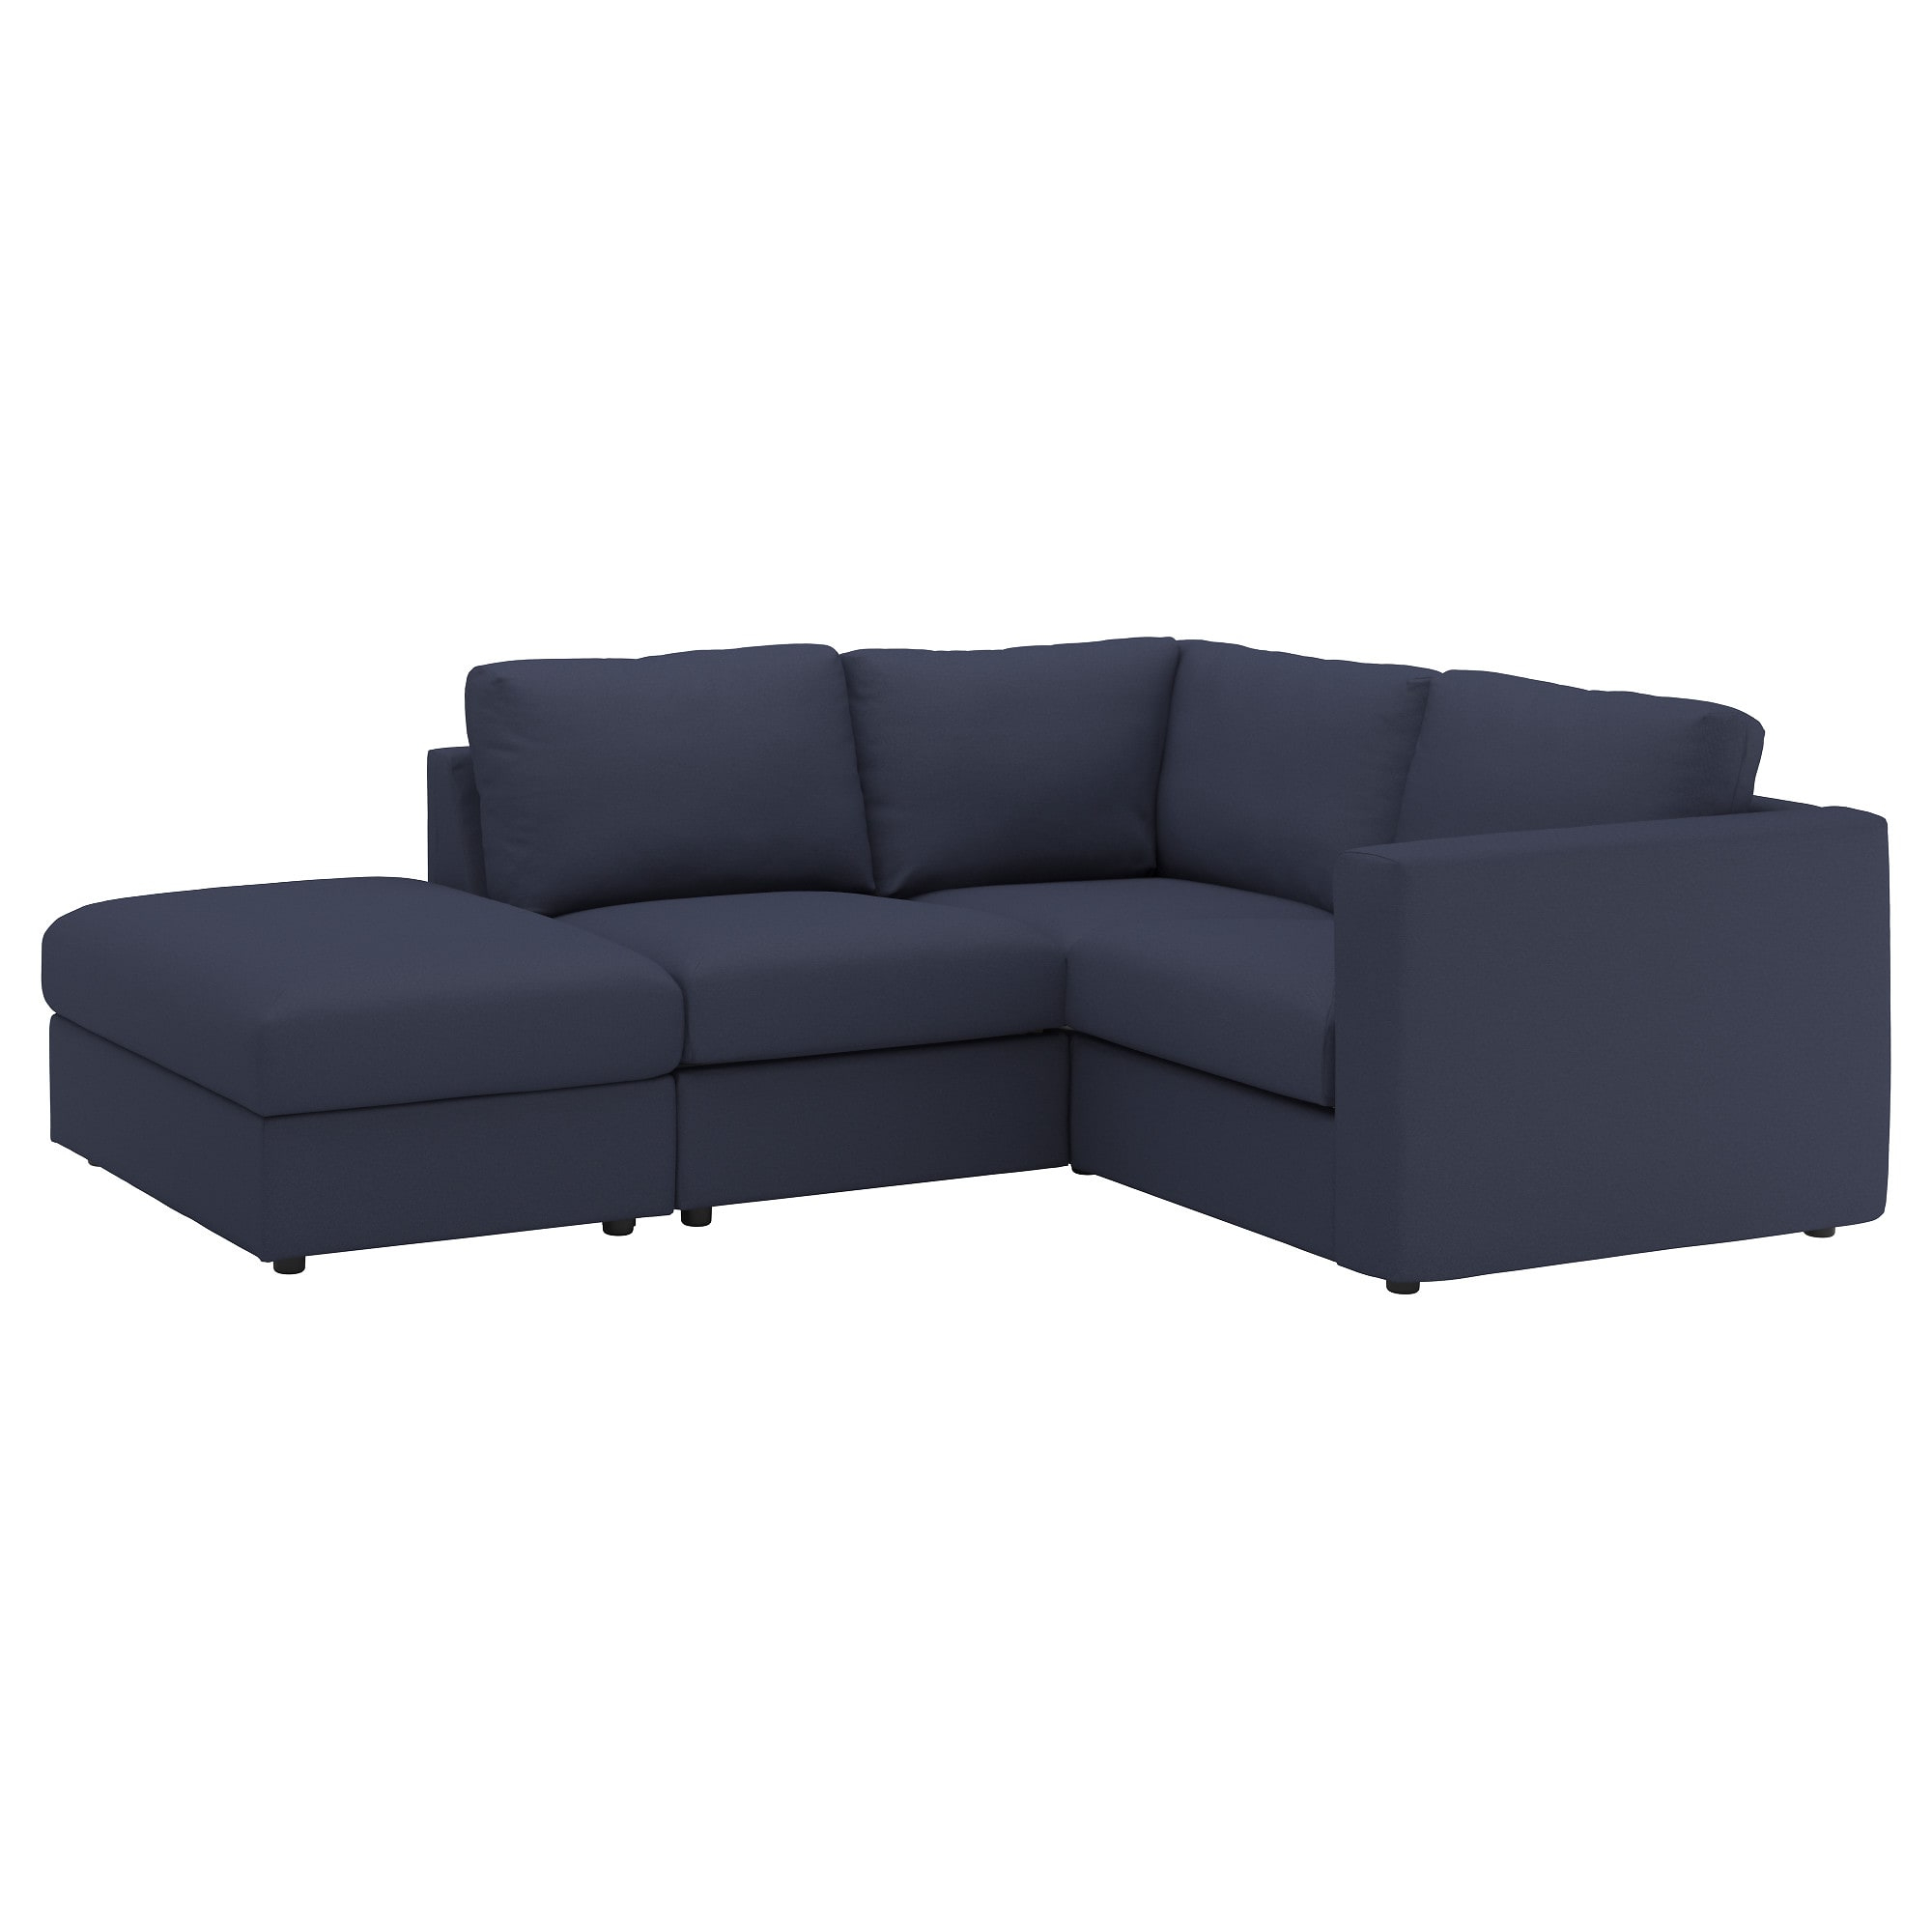 Latest Vimle Sectional, 3 Seat Corner – With Open End/orrsta Black Blue – Ikea With Haven Blue Steel 3 Piece Sectionals (View 11 of 20)